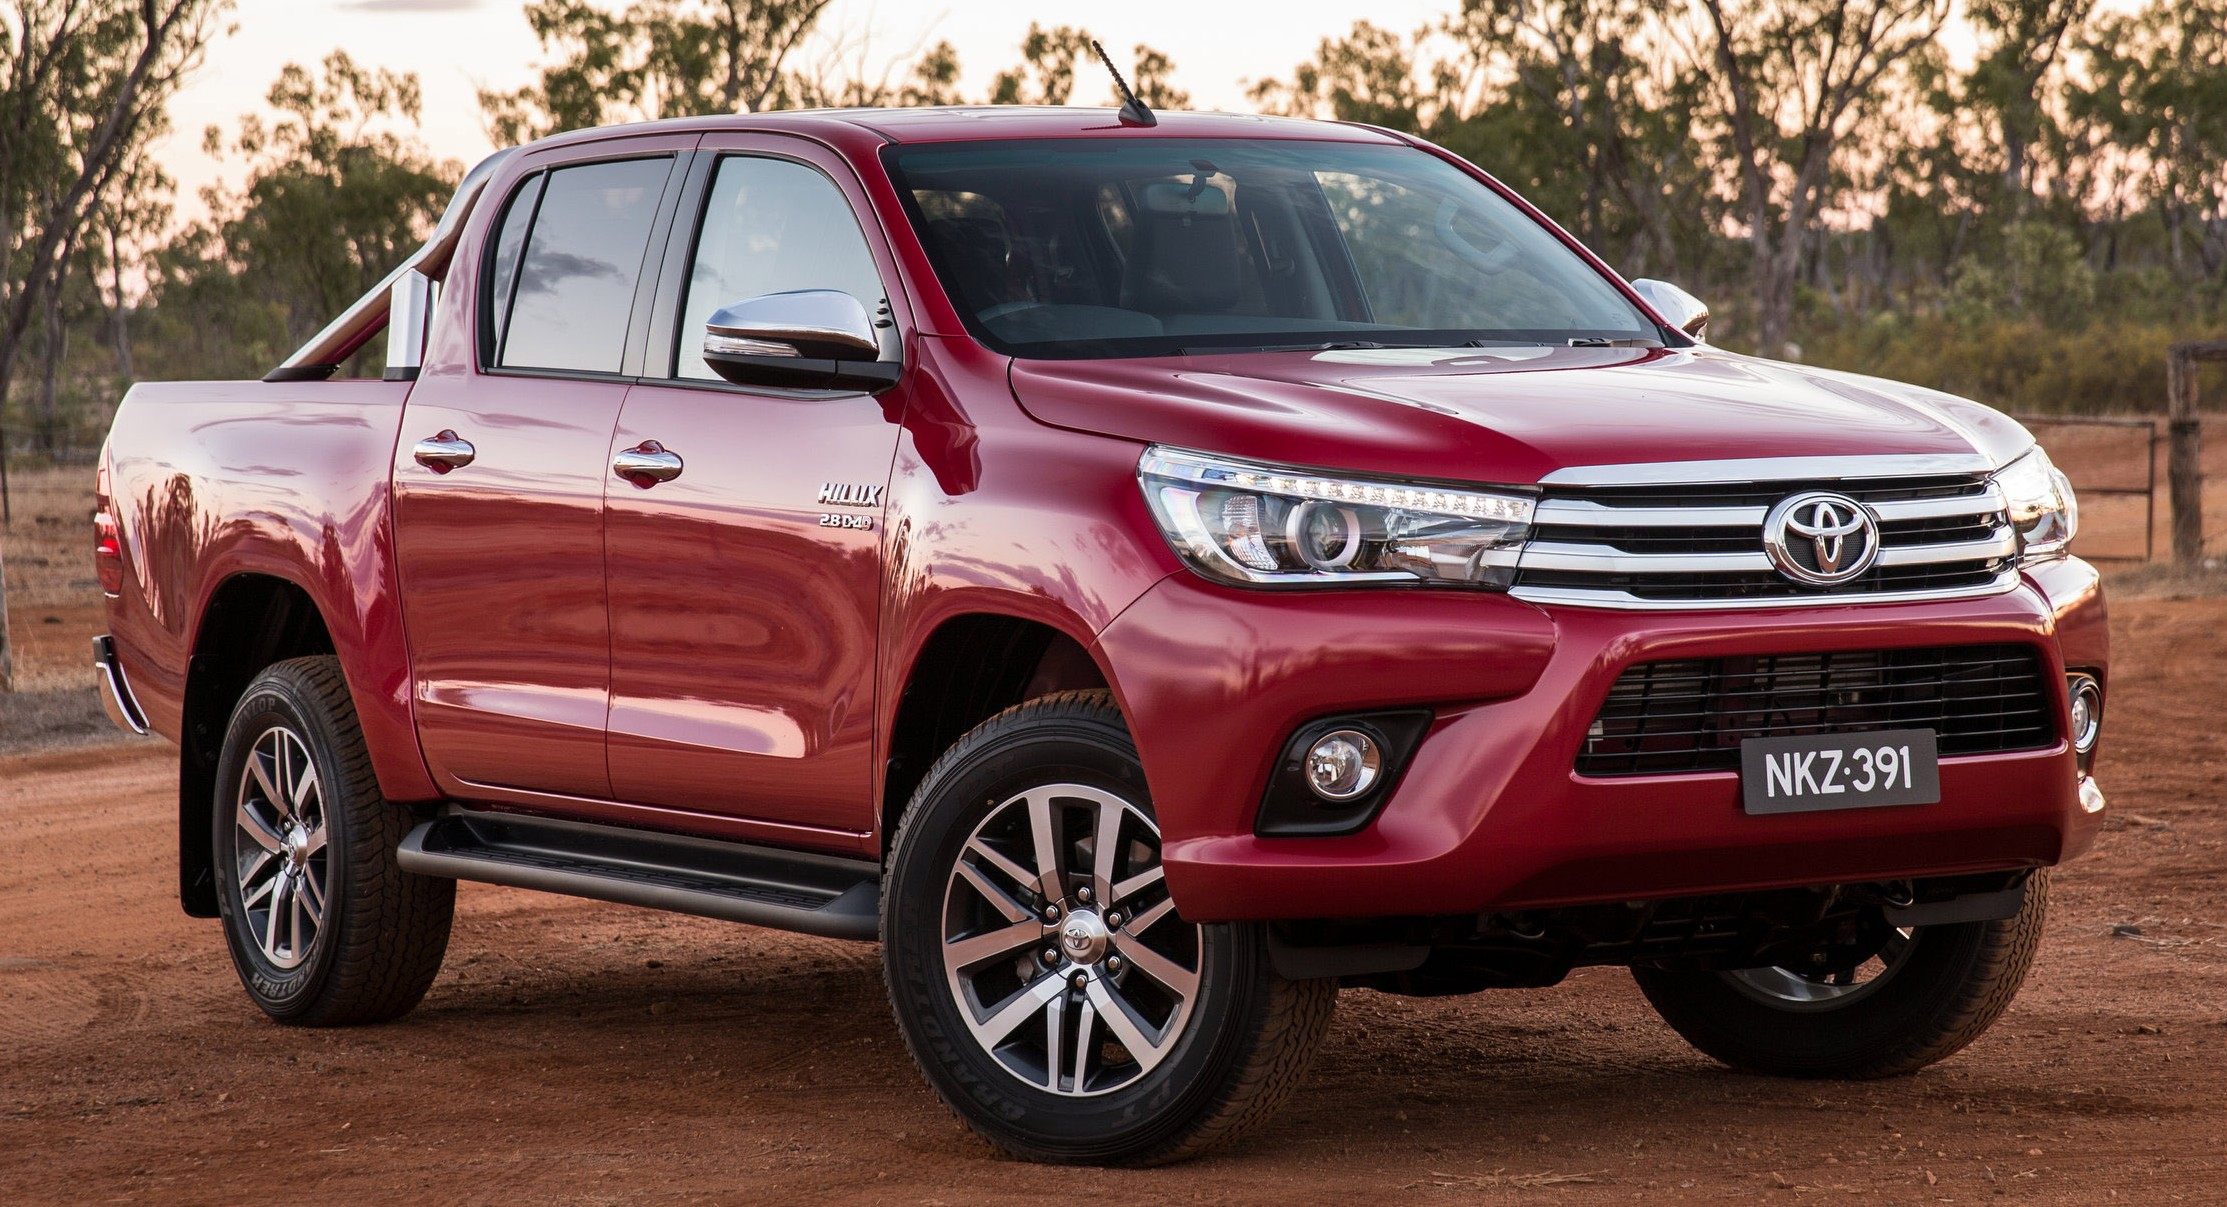 2016 toyota hilux australian specs variants detailed. Black Bedroom Furniture Sets. Home Design Ideas